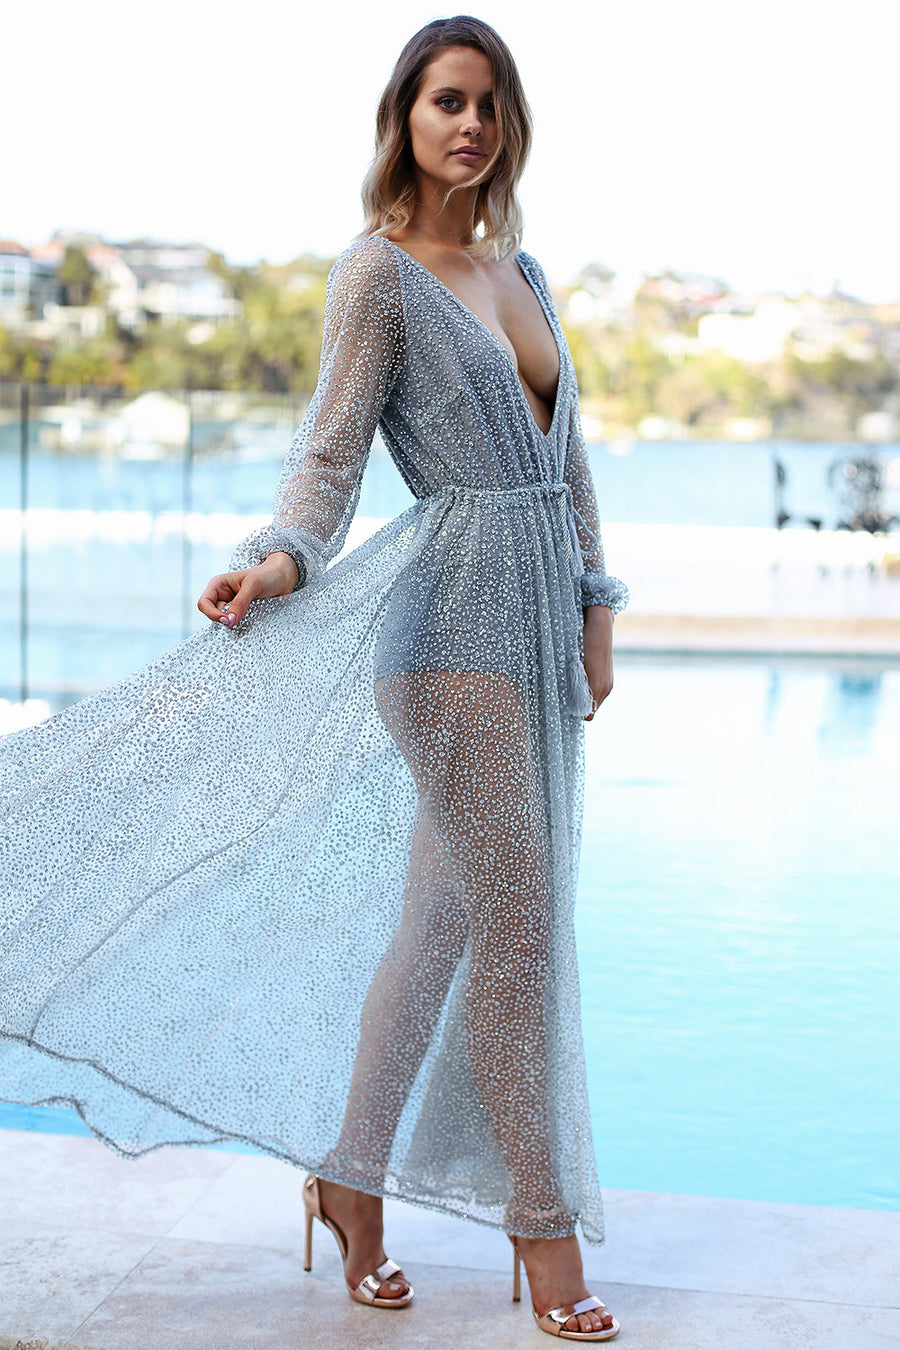 Nala Glitter Gown in Silver for $149.00